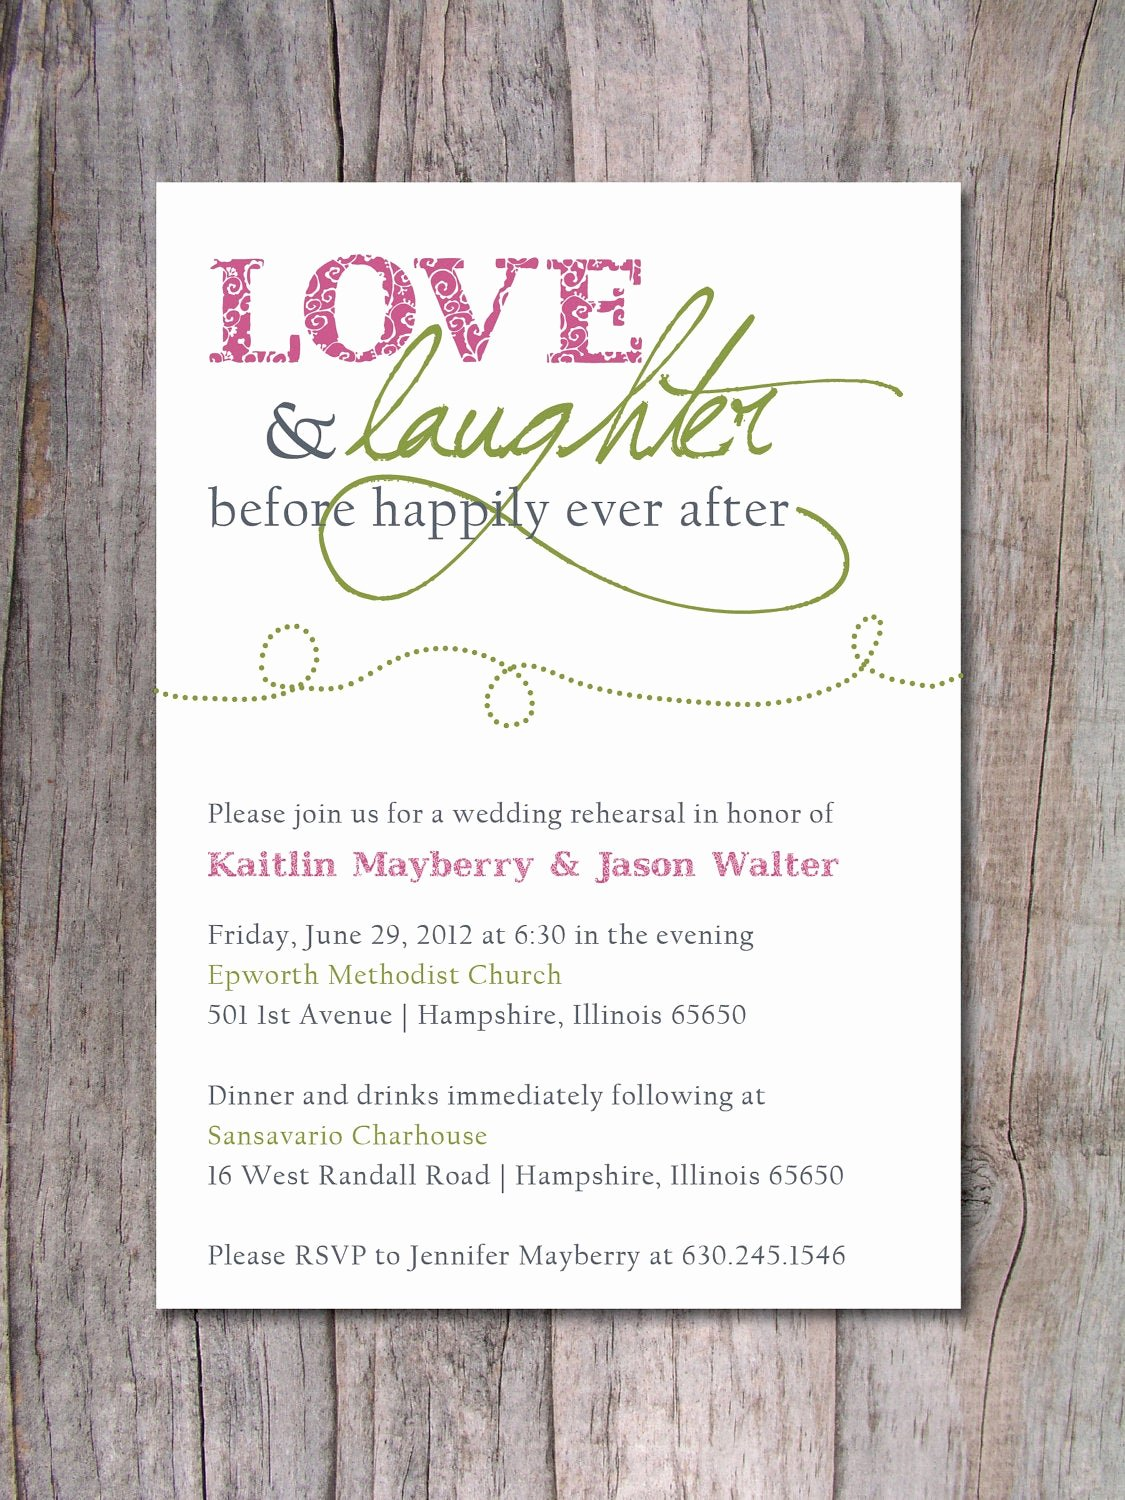 Wedding Rehearsal Dinner Invitation Template Luxury Rehearsal Dinner Invitation Happily Ever after by Pinch Spice